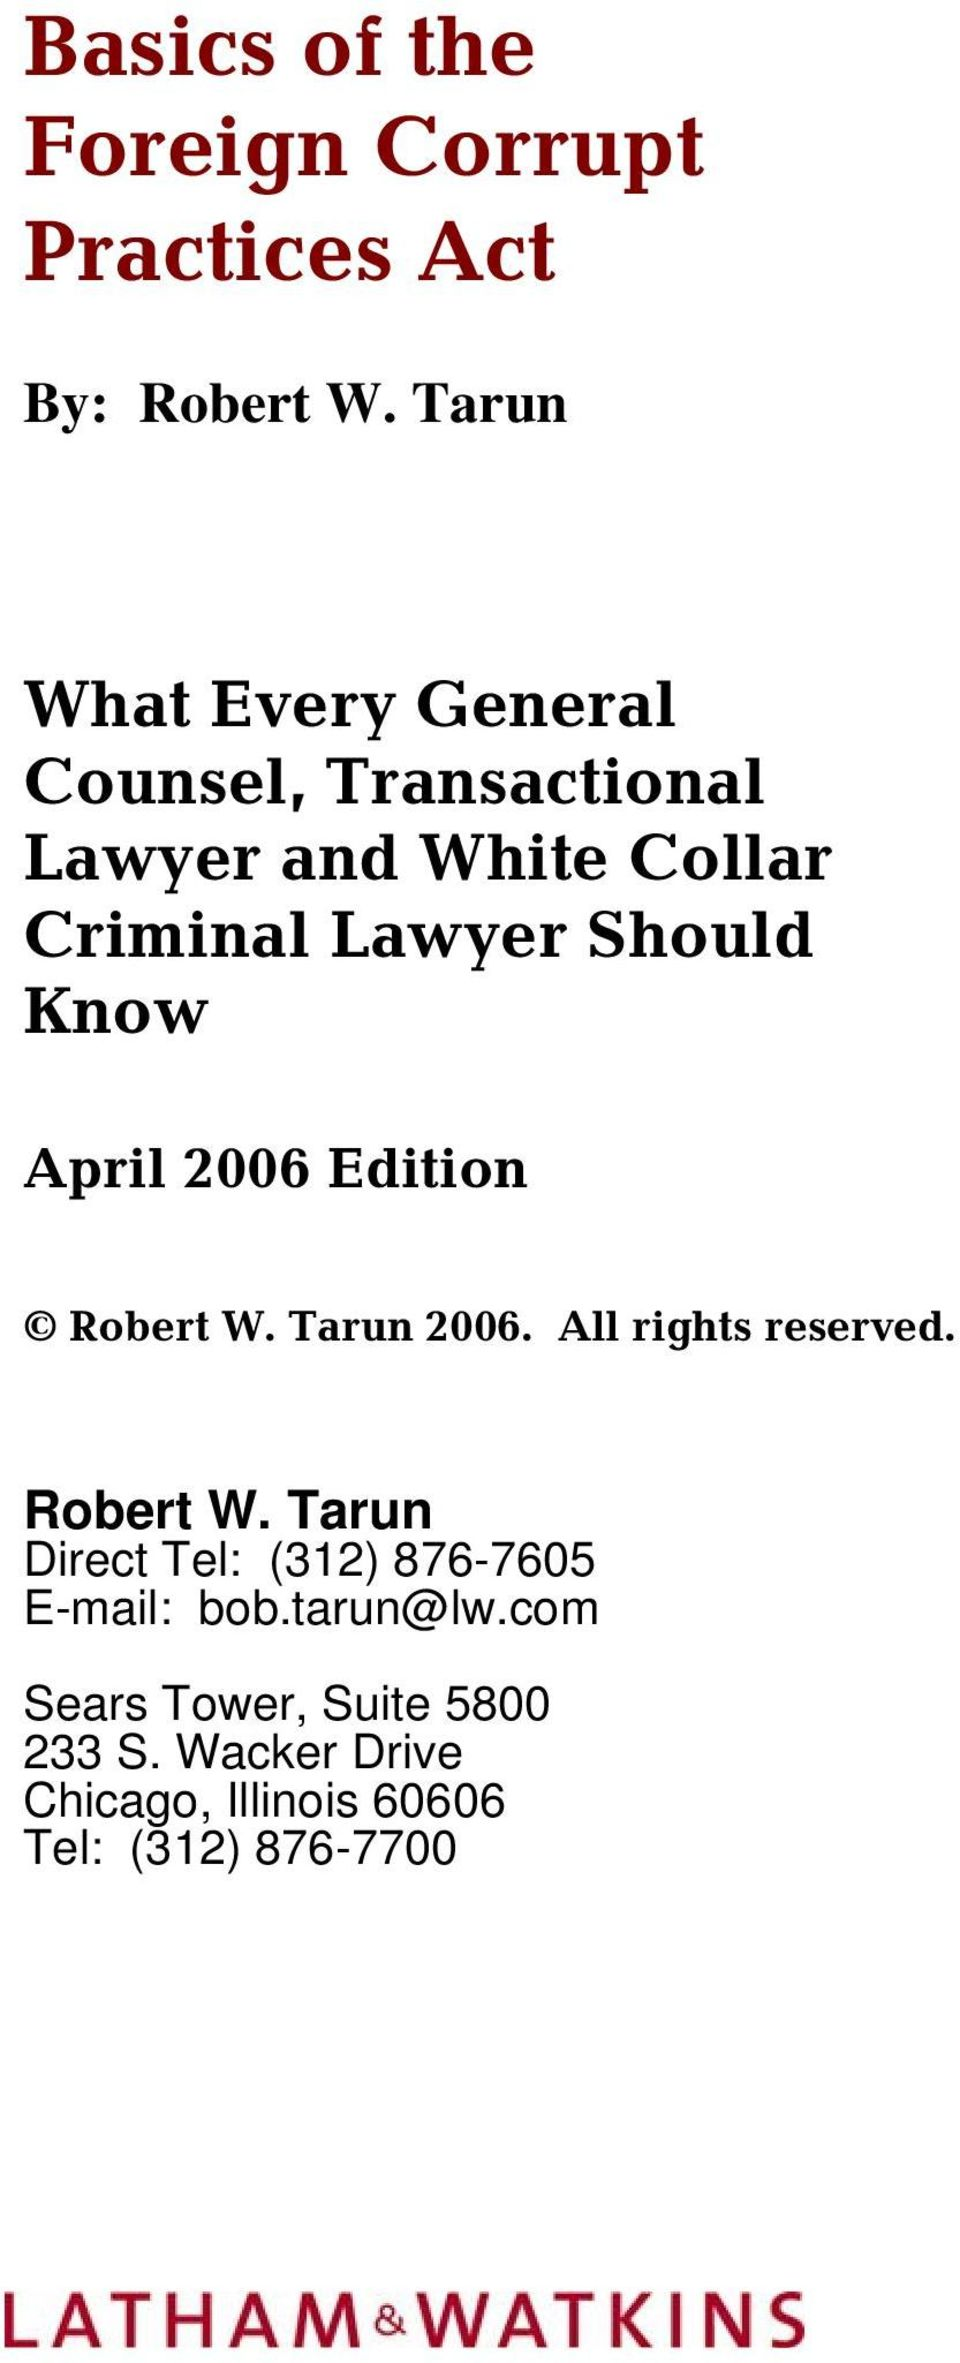 Should Know April 2006 Edition Robert W. Tarun 2006. All rights reserved. Robert W. Tarun Direct Tel: (312) 876-7605 E-mail: bob.